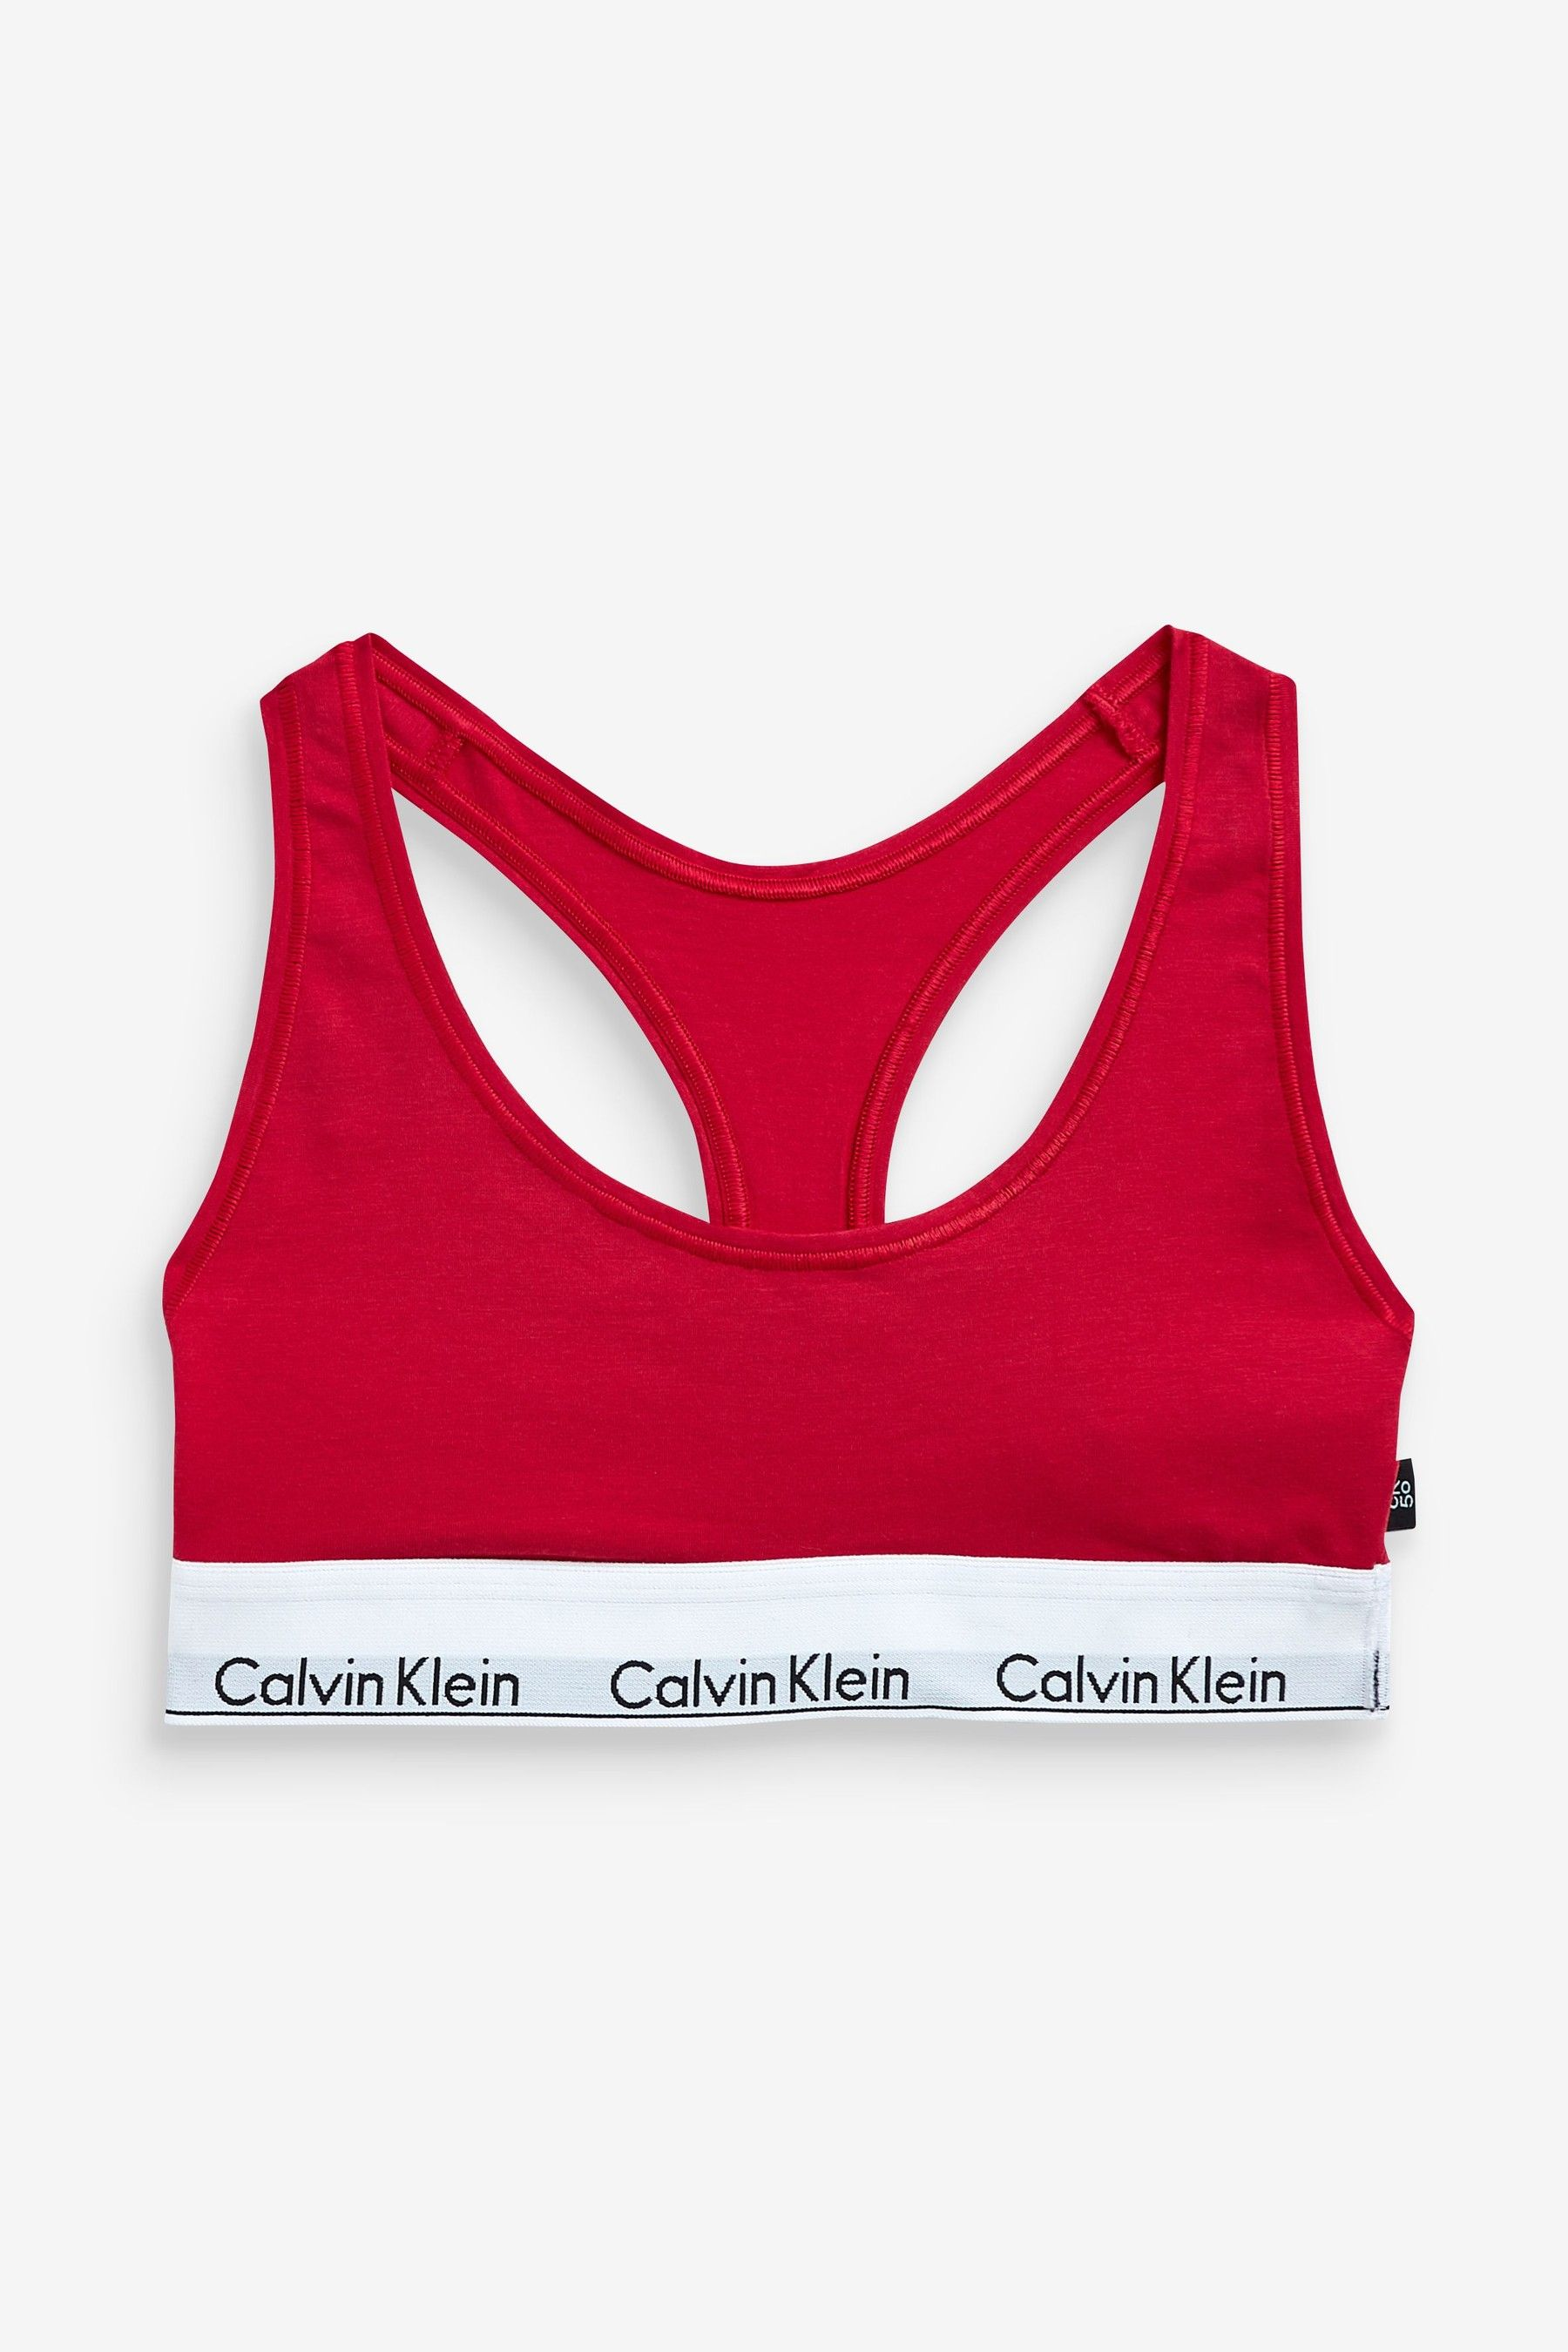 Womens Calvin Klein Red Limited Edition Bralette Red in